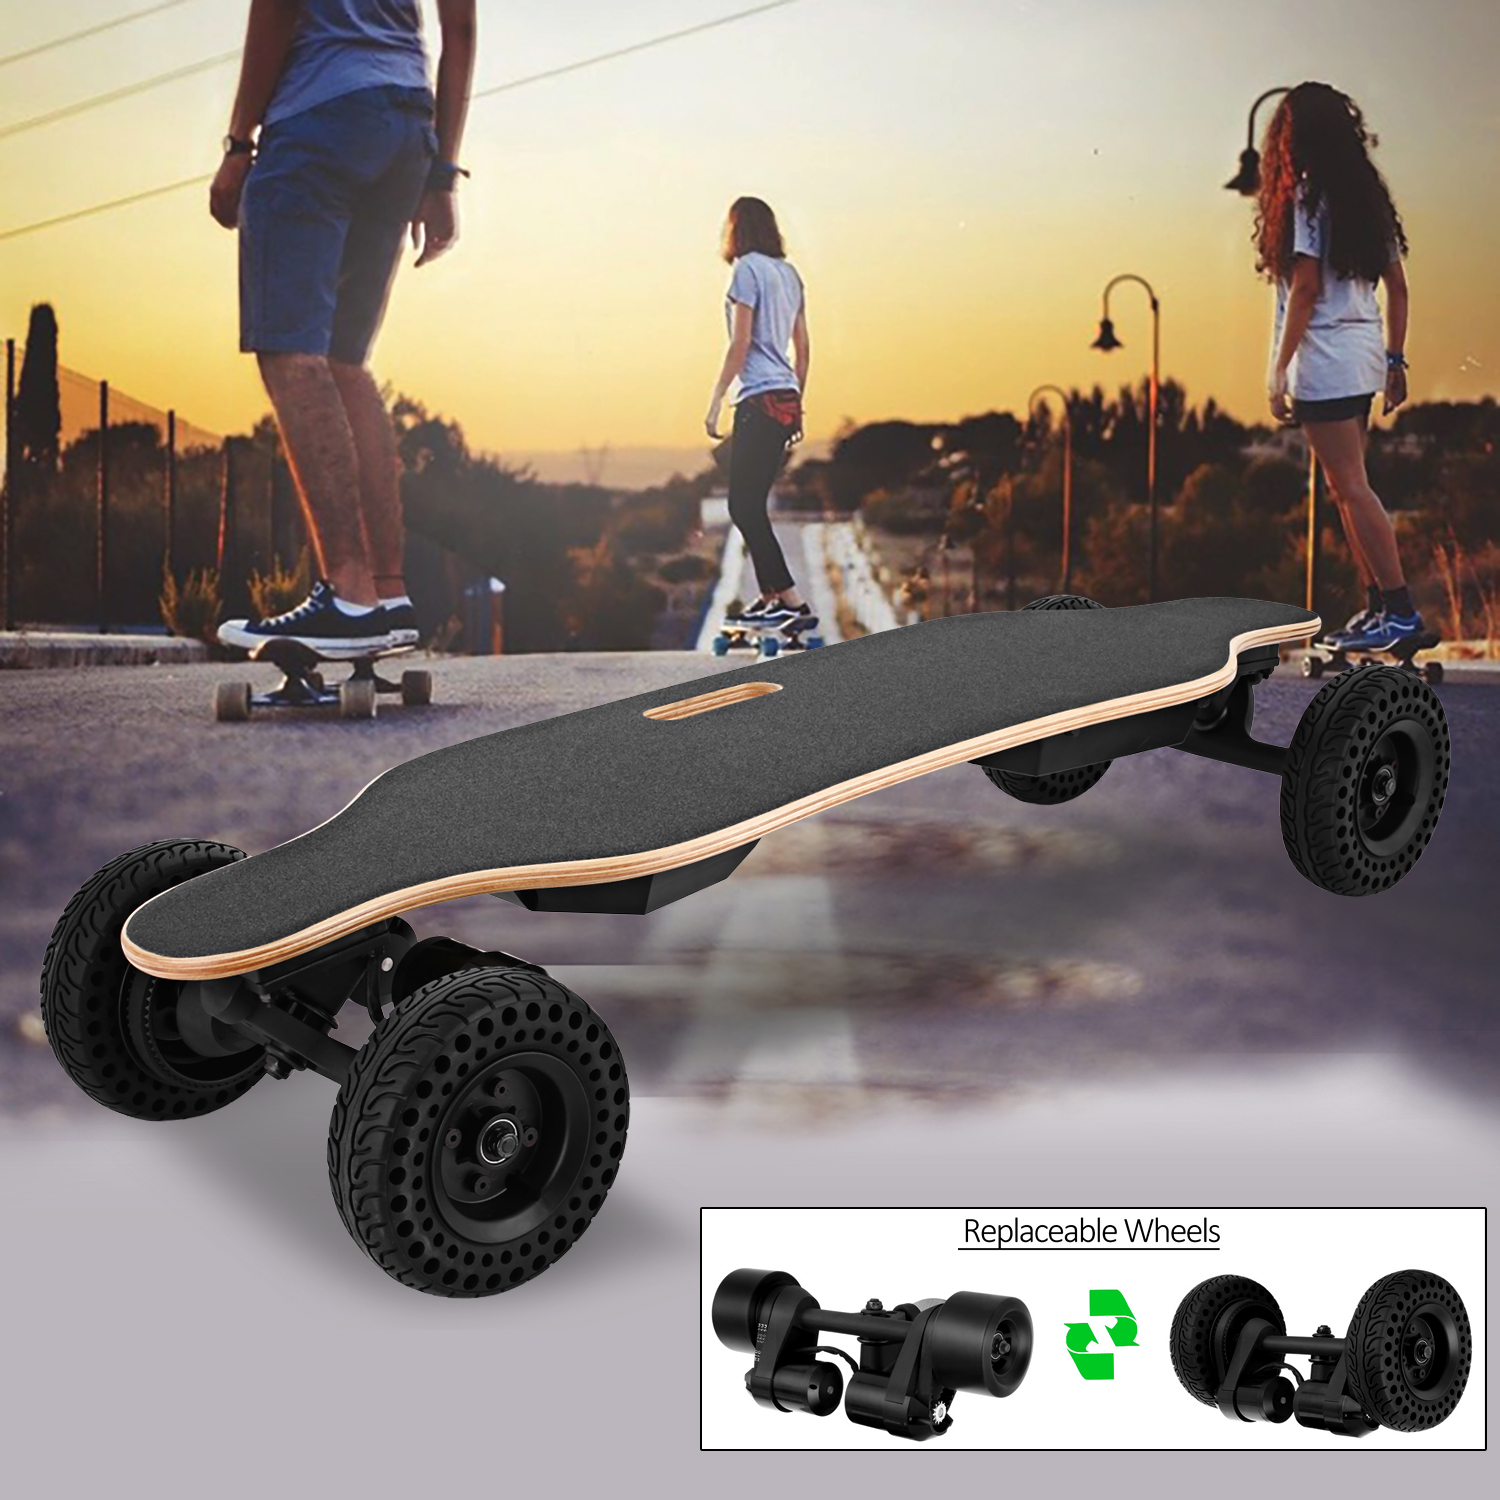 New 37inch SUV-Longboard Electric Skateboard with Wireless Handheld Remote Control (2 Ride models for change )HDPML by